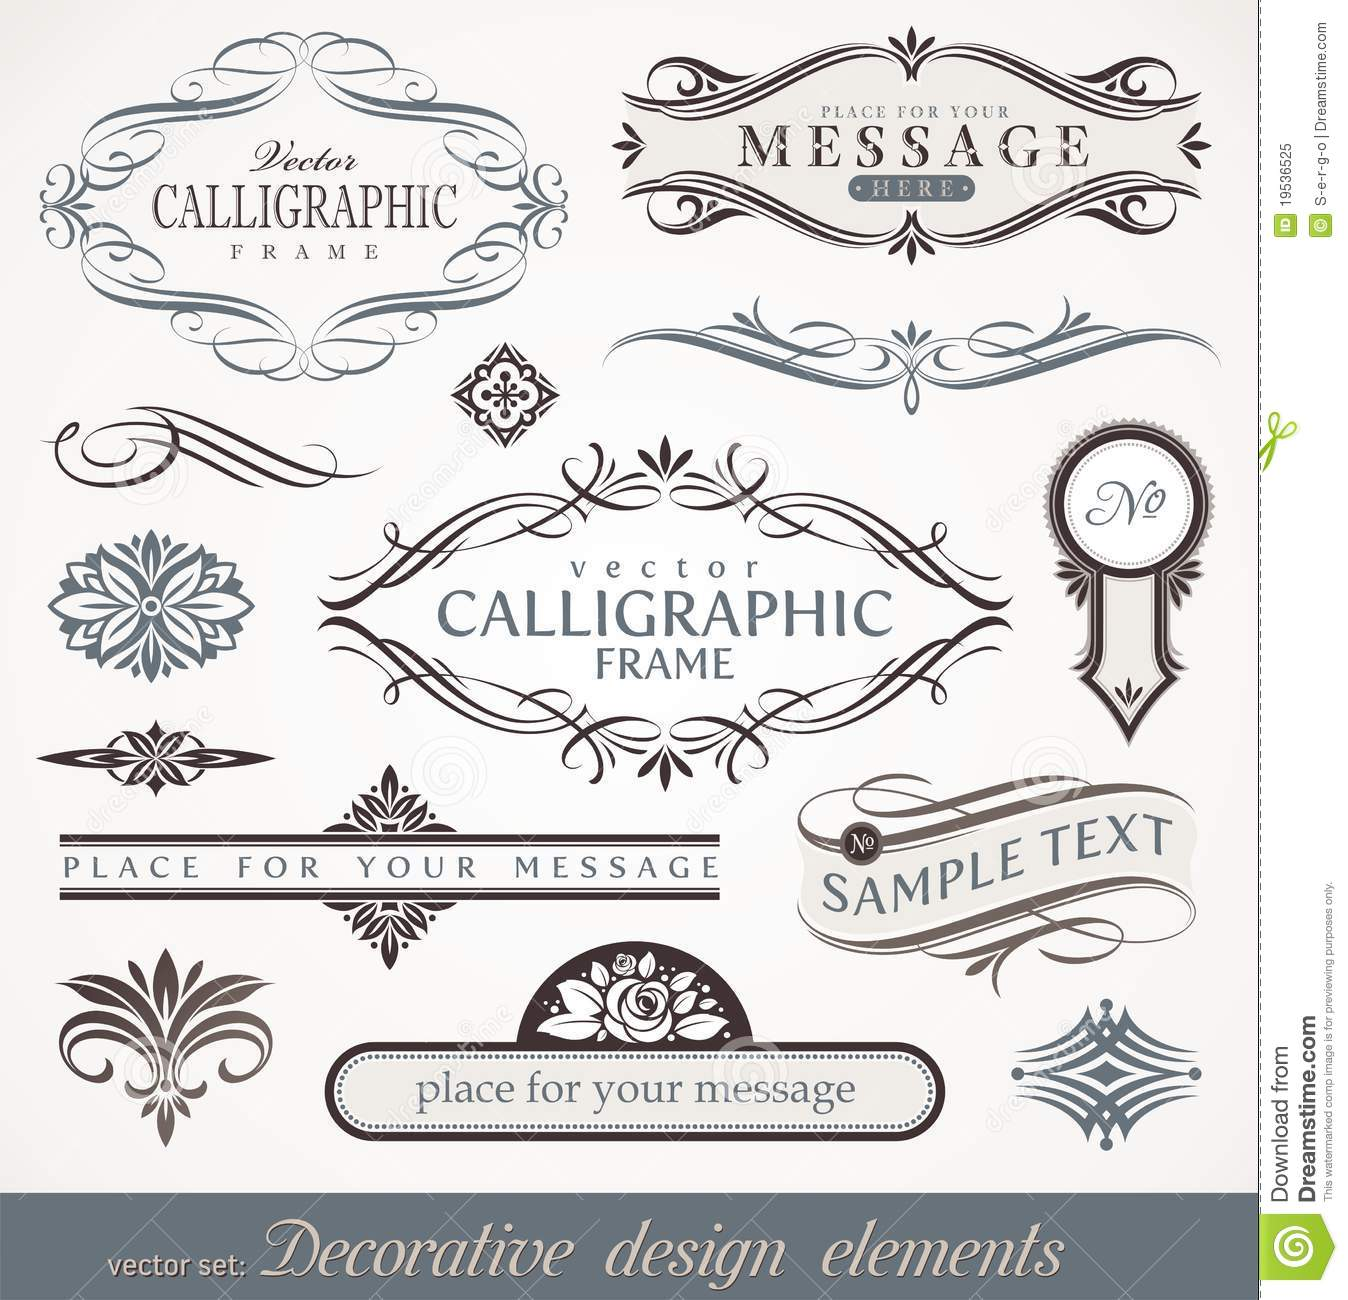 ... Elements & Page Decor Royalty Free Stock Photo - Image: 19536525